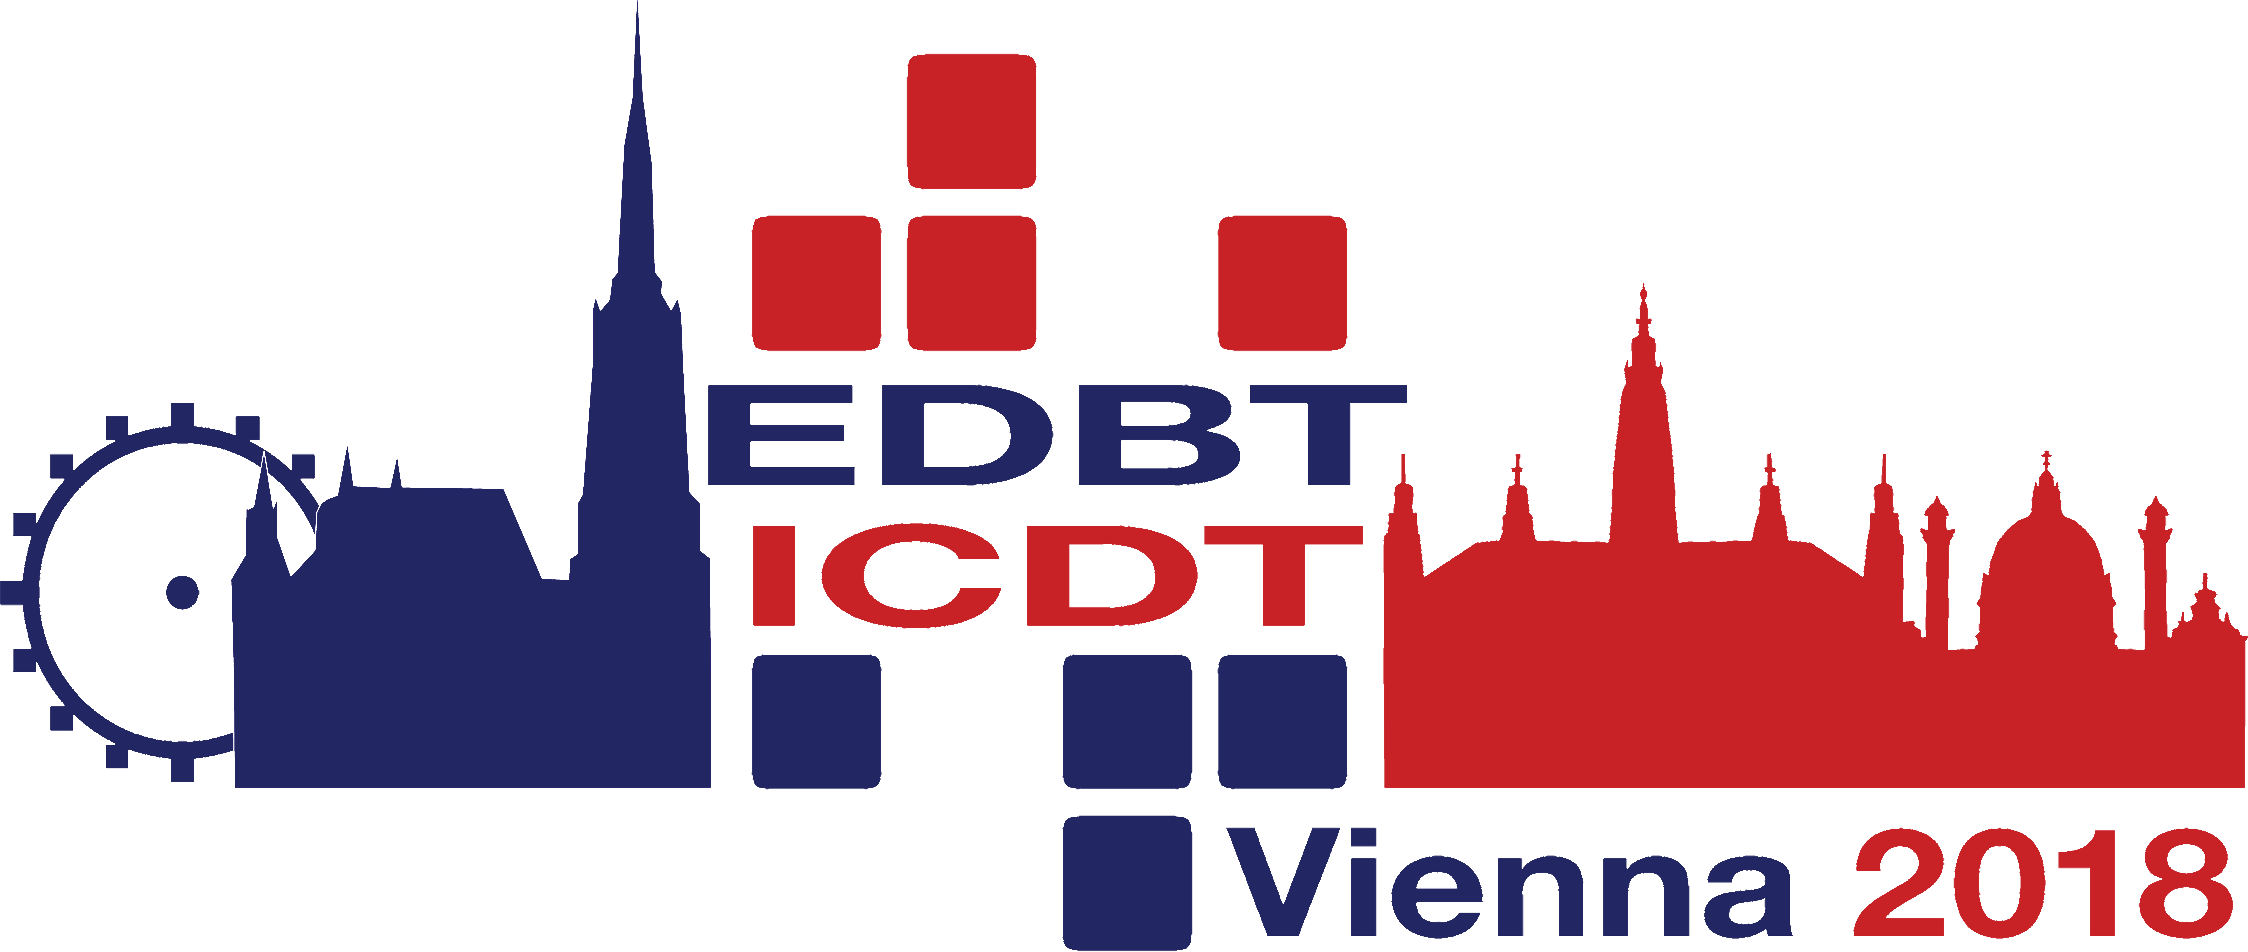 EDBT/ICDT 2018 Joint Conference